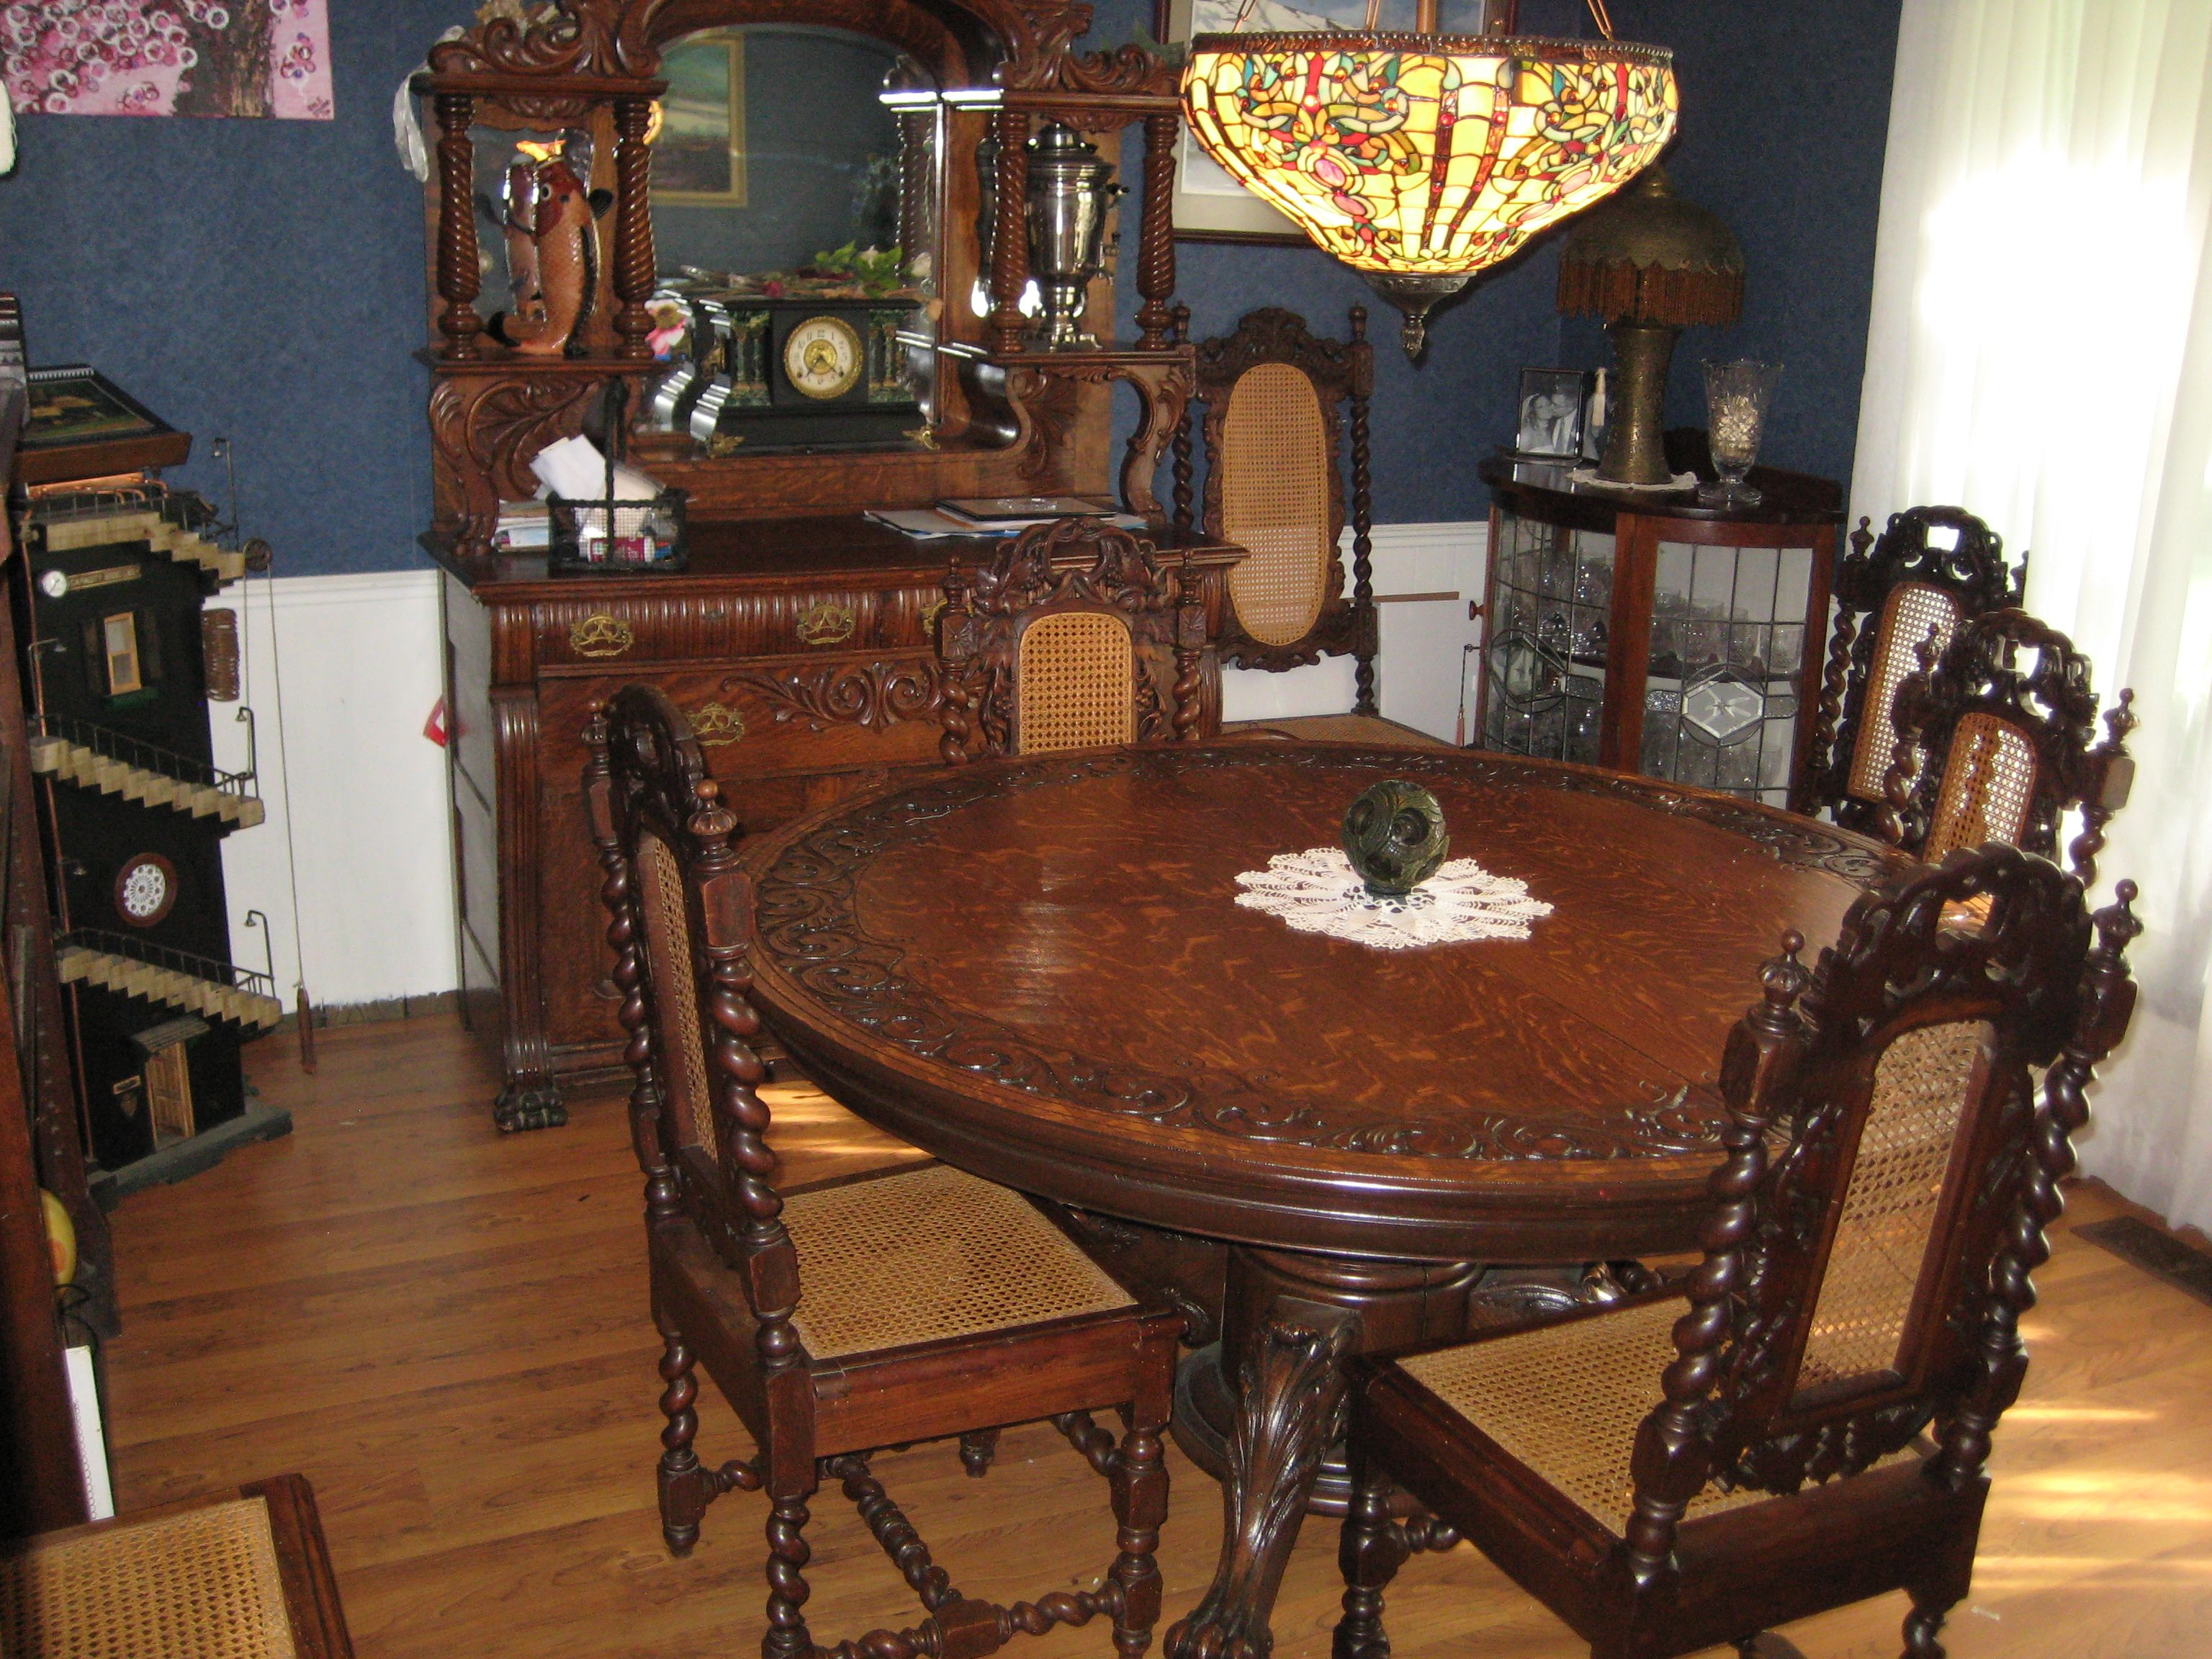 Dining Room Hand Carved Oak Table 1920 S With Oak Buffet With 1915 Oak Handcarved Barley Twist Hunter Chairs From England Wi Banquet Seating Oak Table Dining